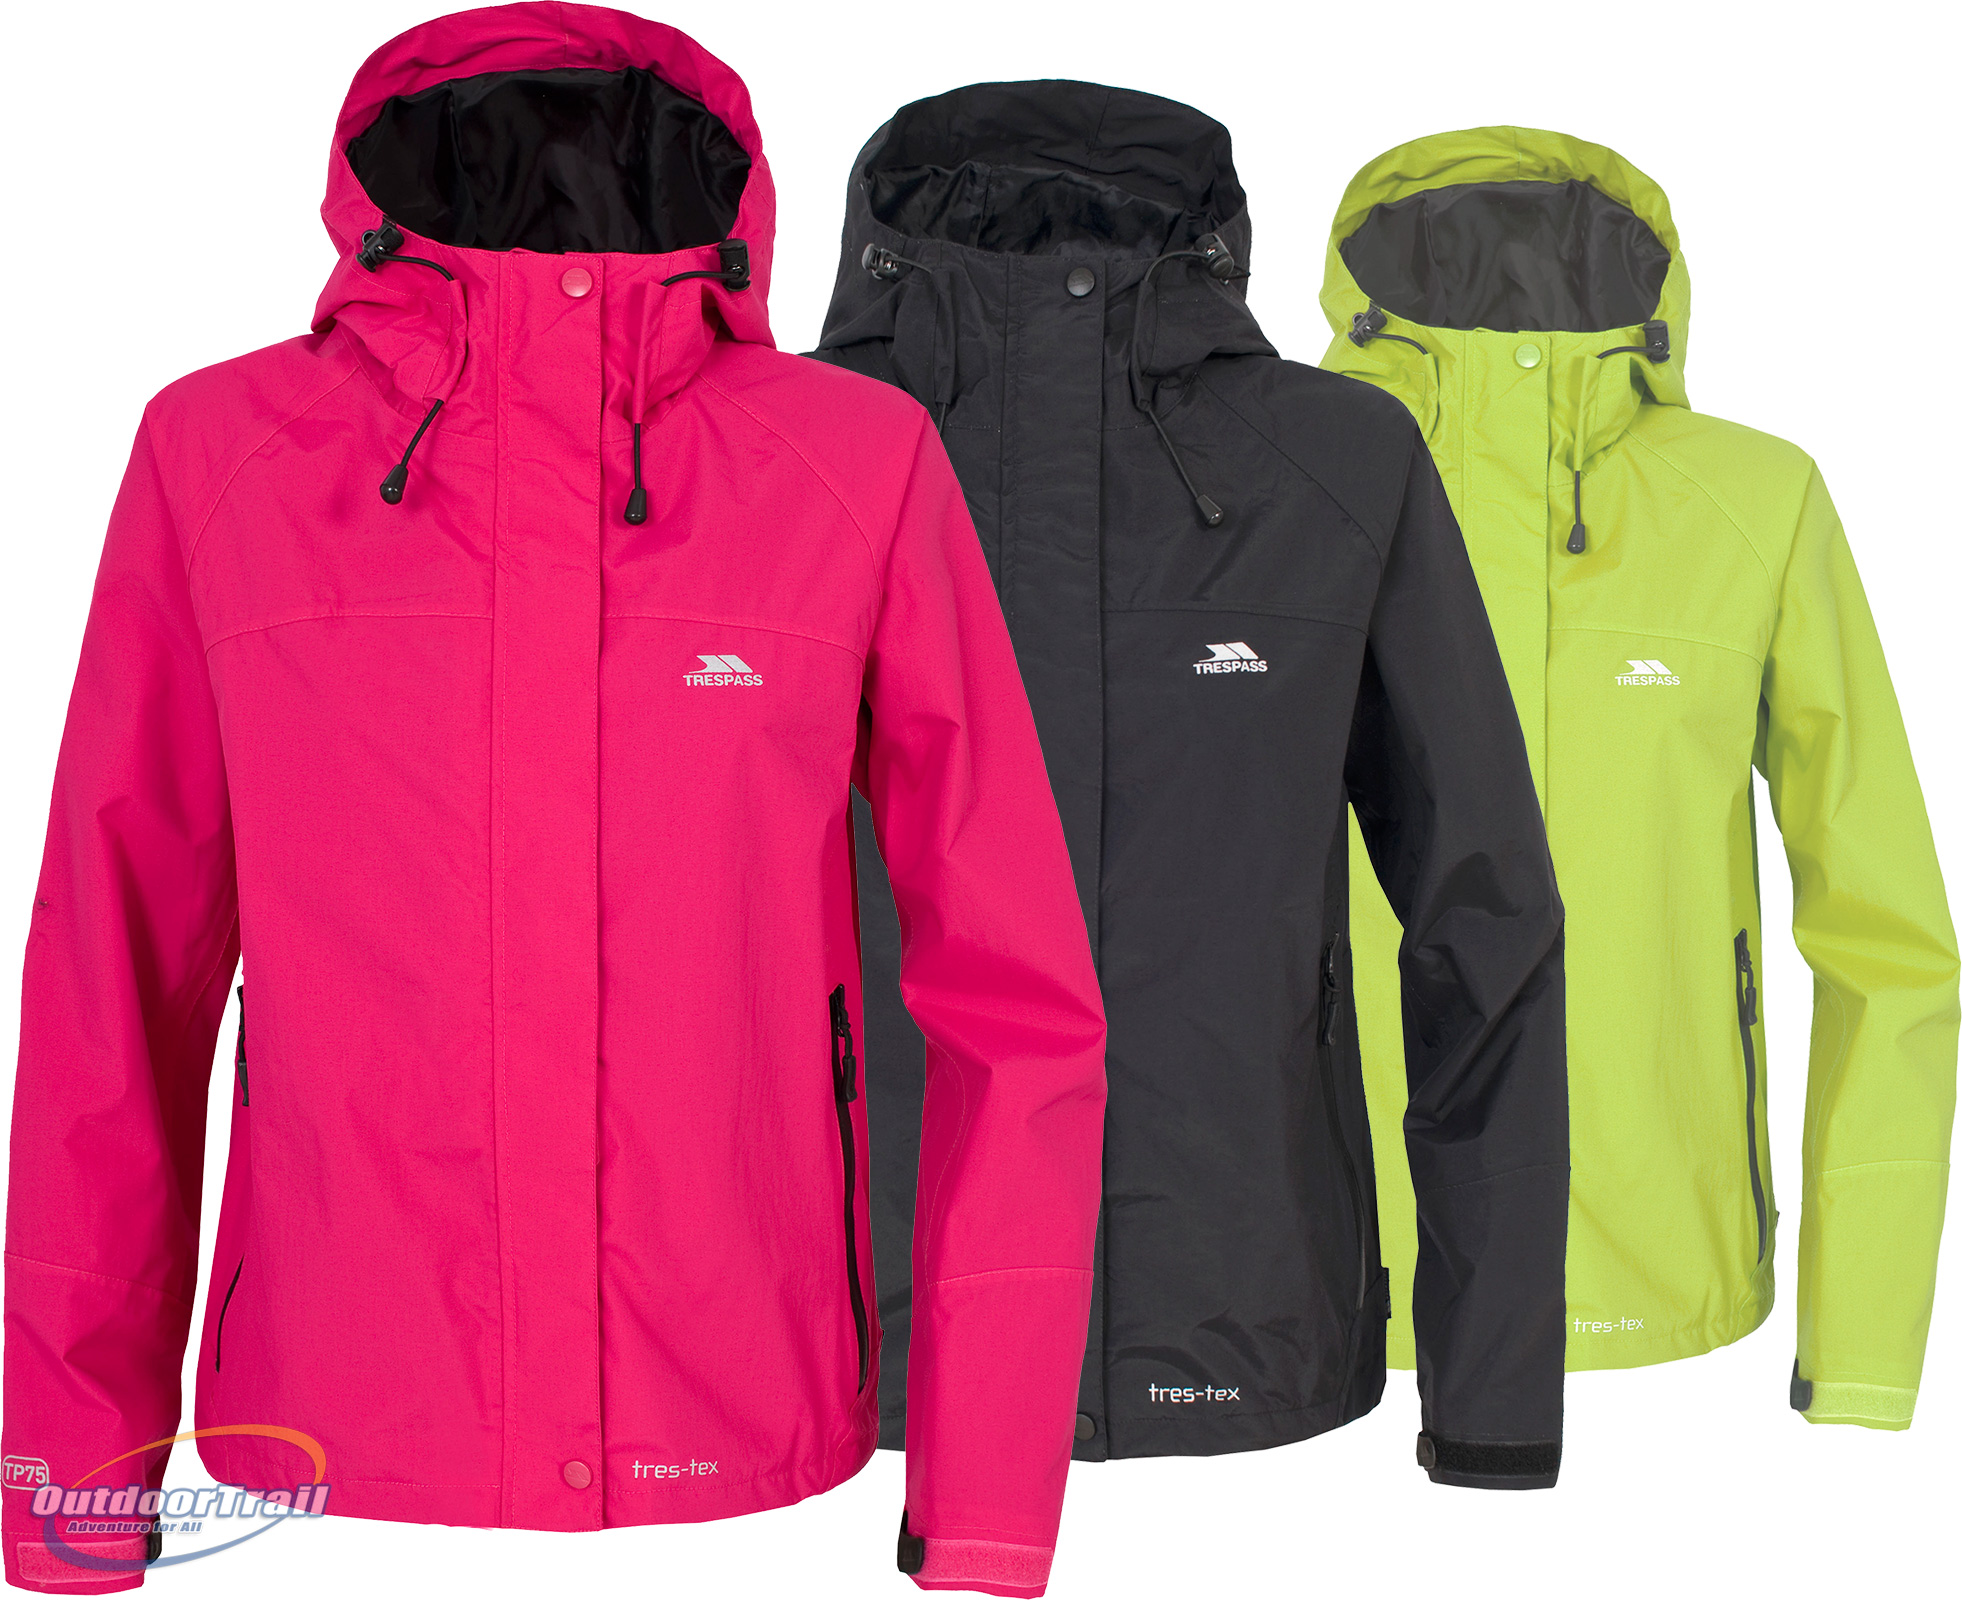 Trespass Miyake Ladies Waterproof Windproof Breathable Walking Jacket